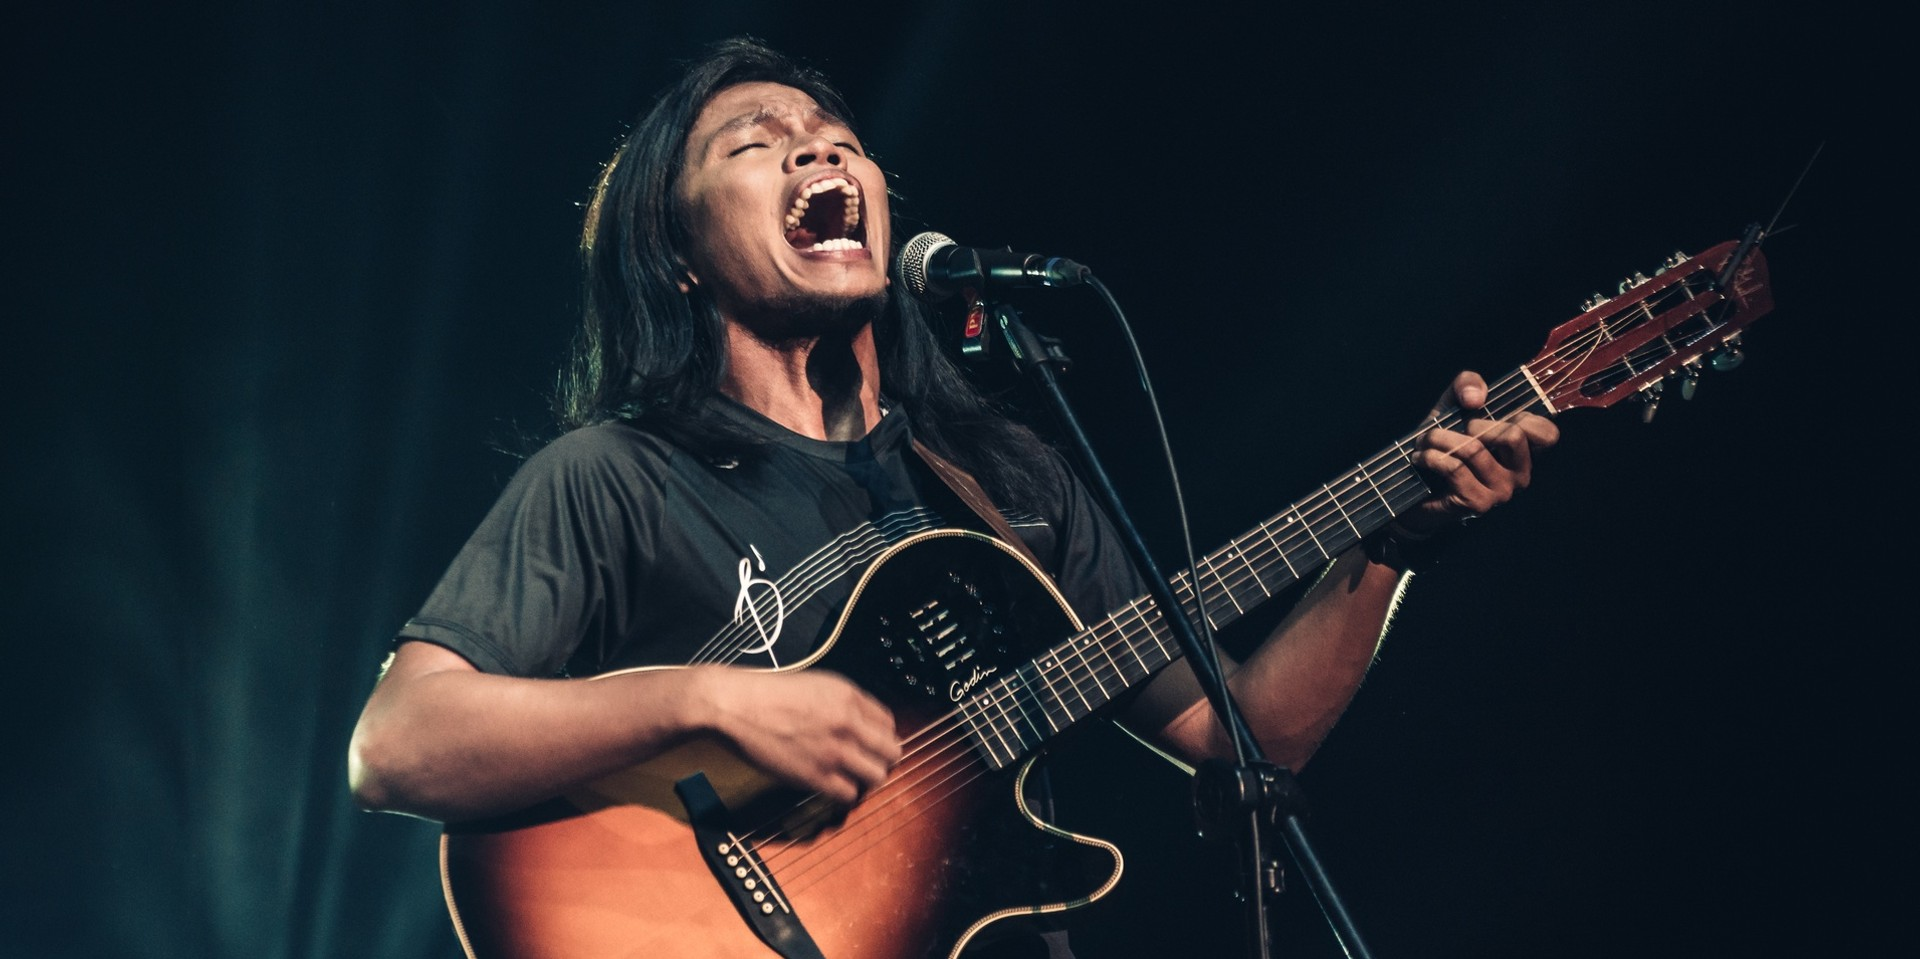 Bullet Dumas pens inspiring song for music industry workers in the Philippines – listen